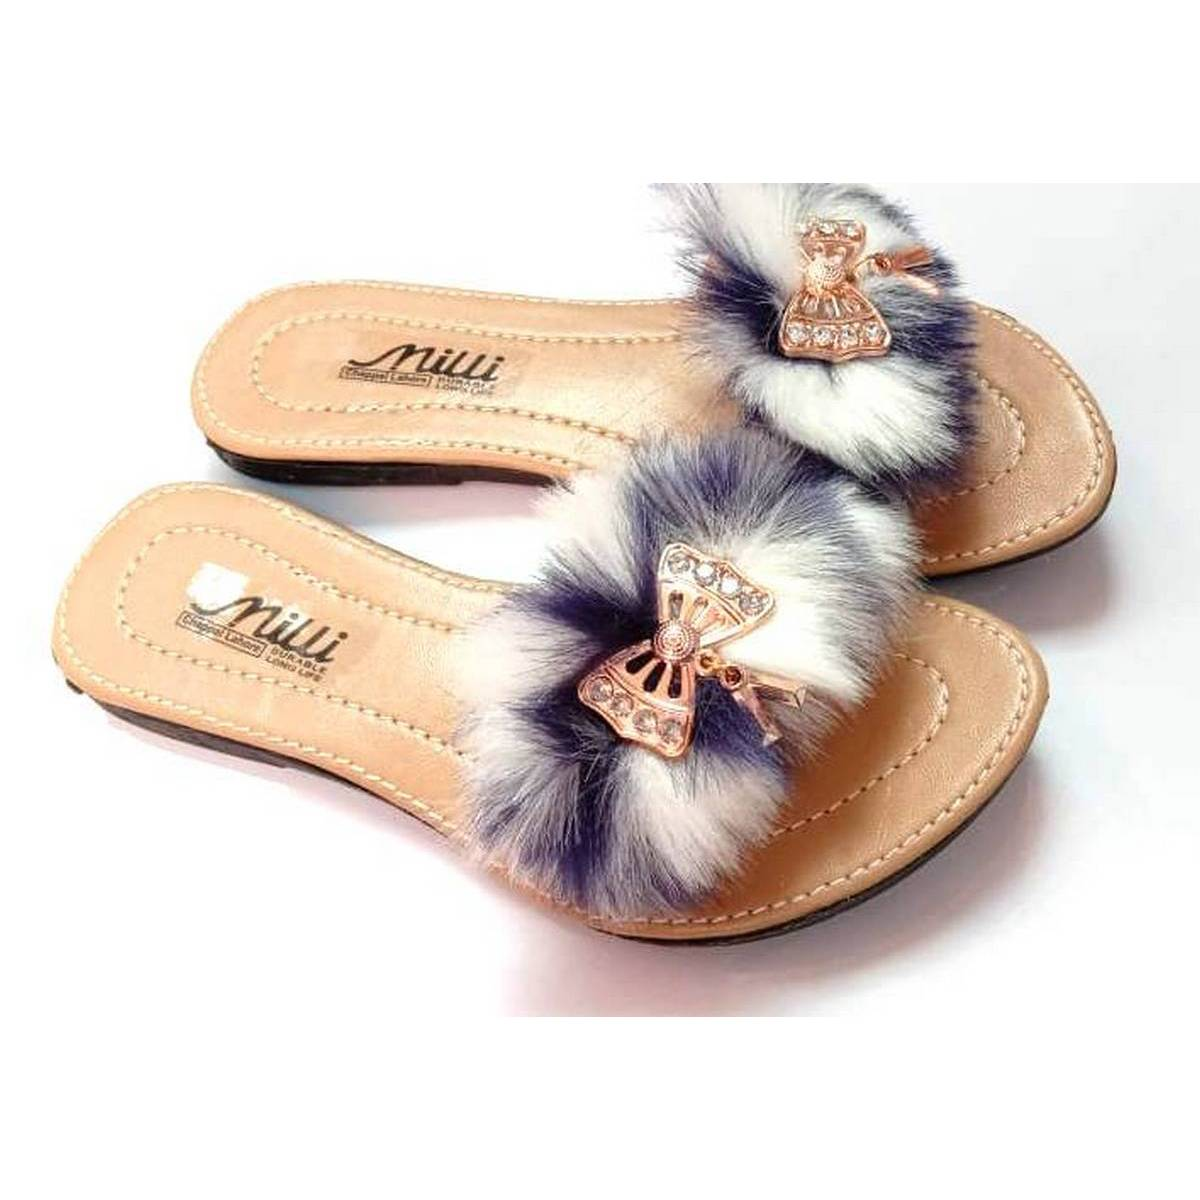 Ladies Slippers For Girls (Navy Blue White Brown)